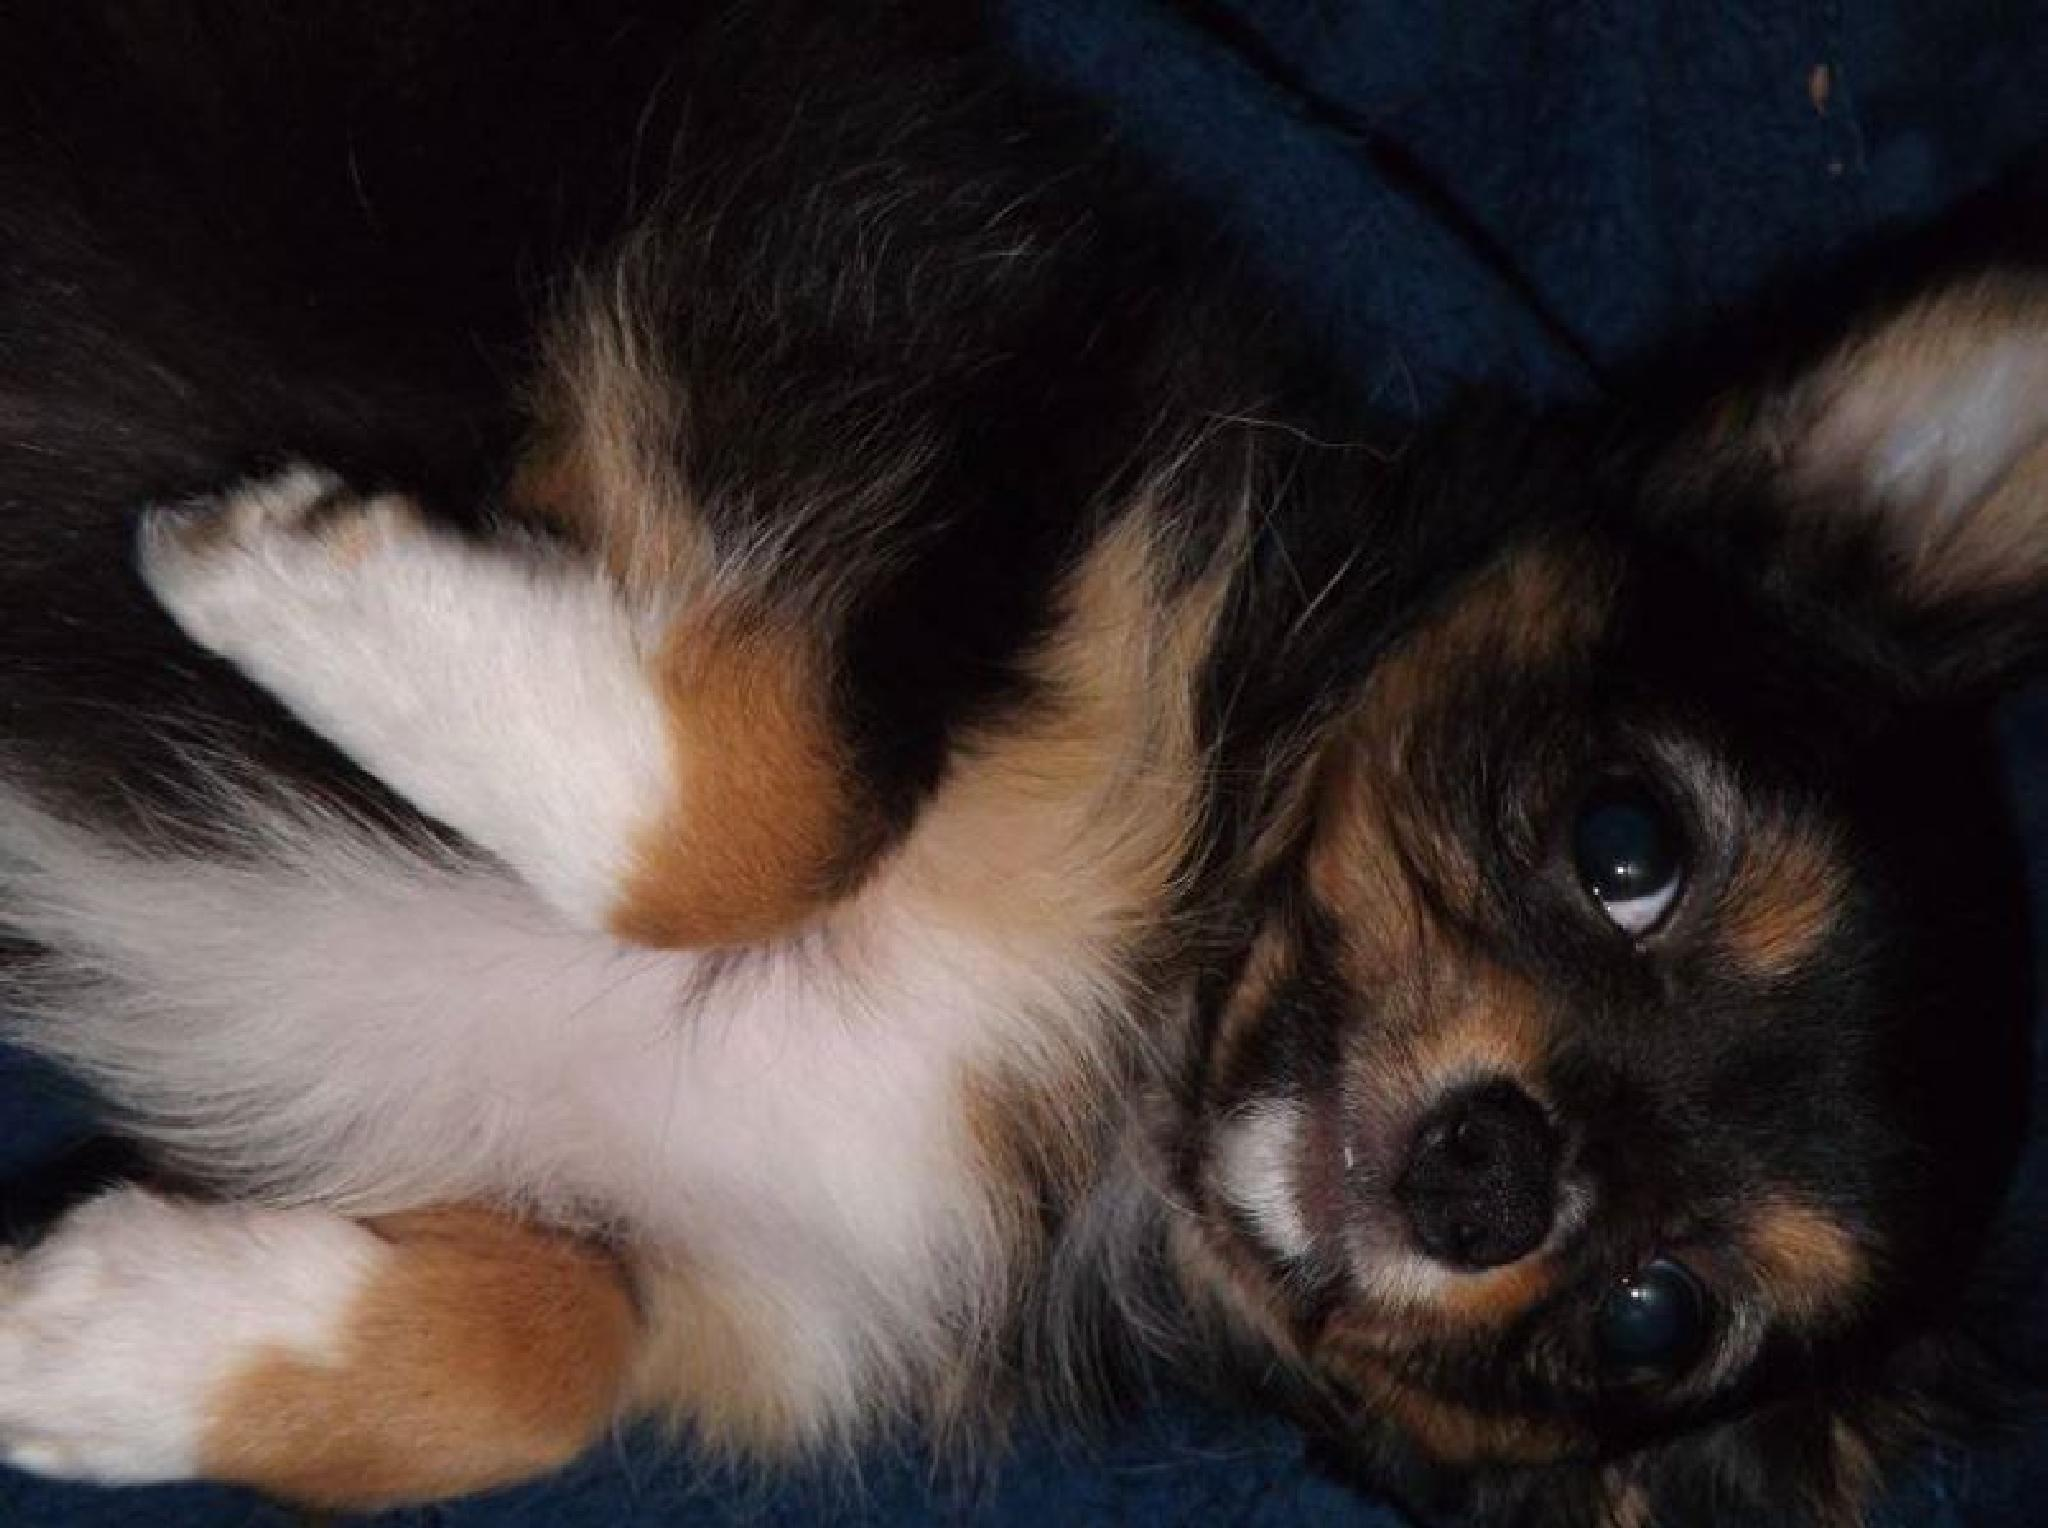 My Long Haired Chihuahua Hutta posing for the camera by Quentin den Braber